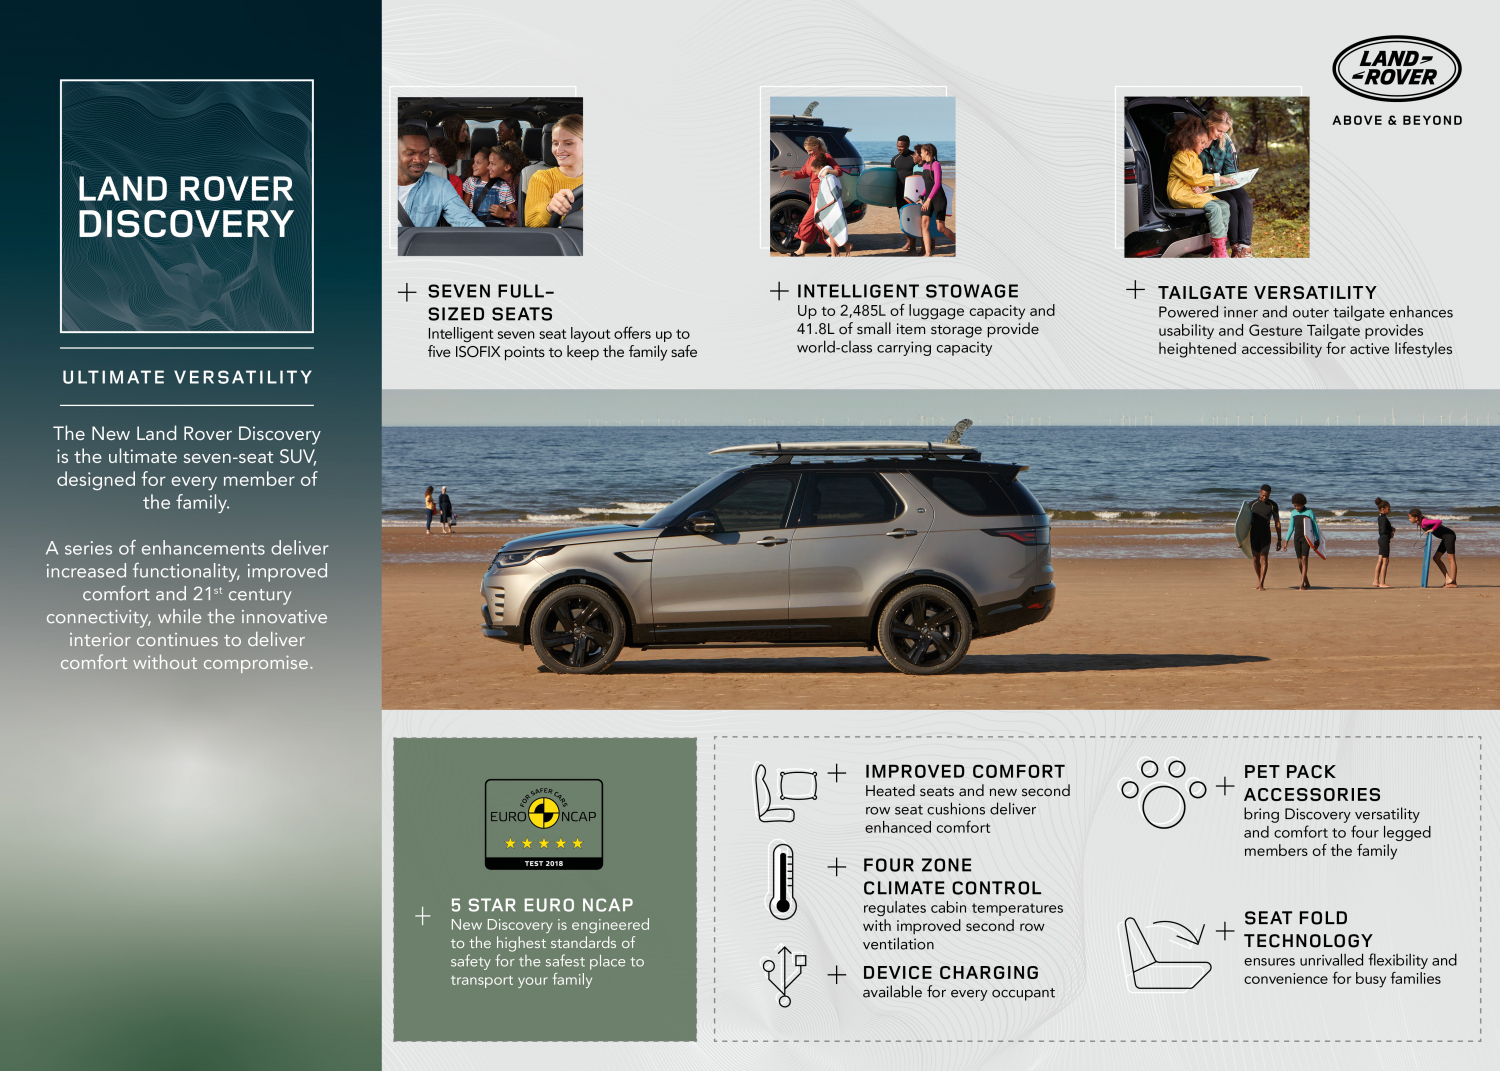 New Discovery: Efficient Powertrains, Enhanced Connectivity and more Comfort for Versatile Family Suv - Image 1